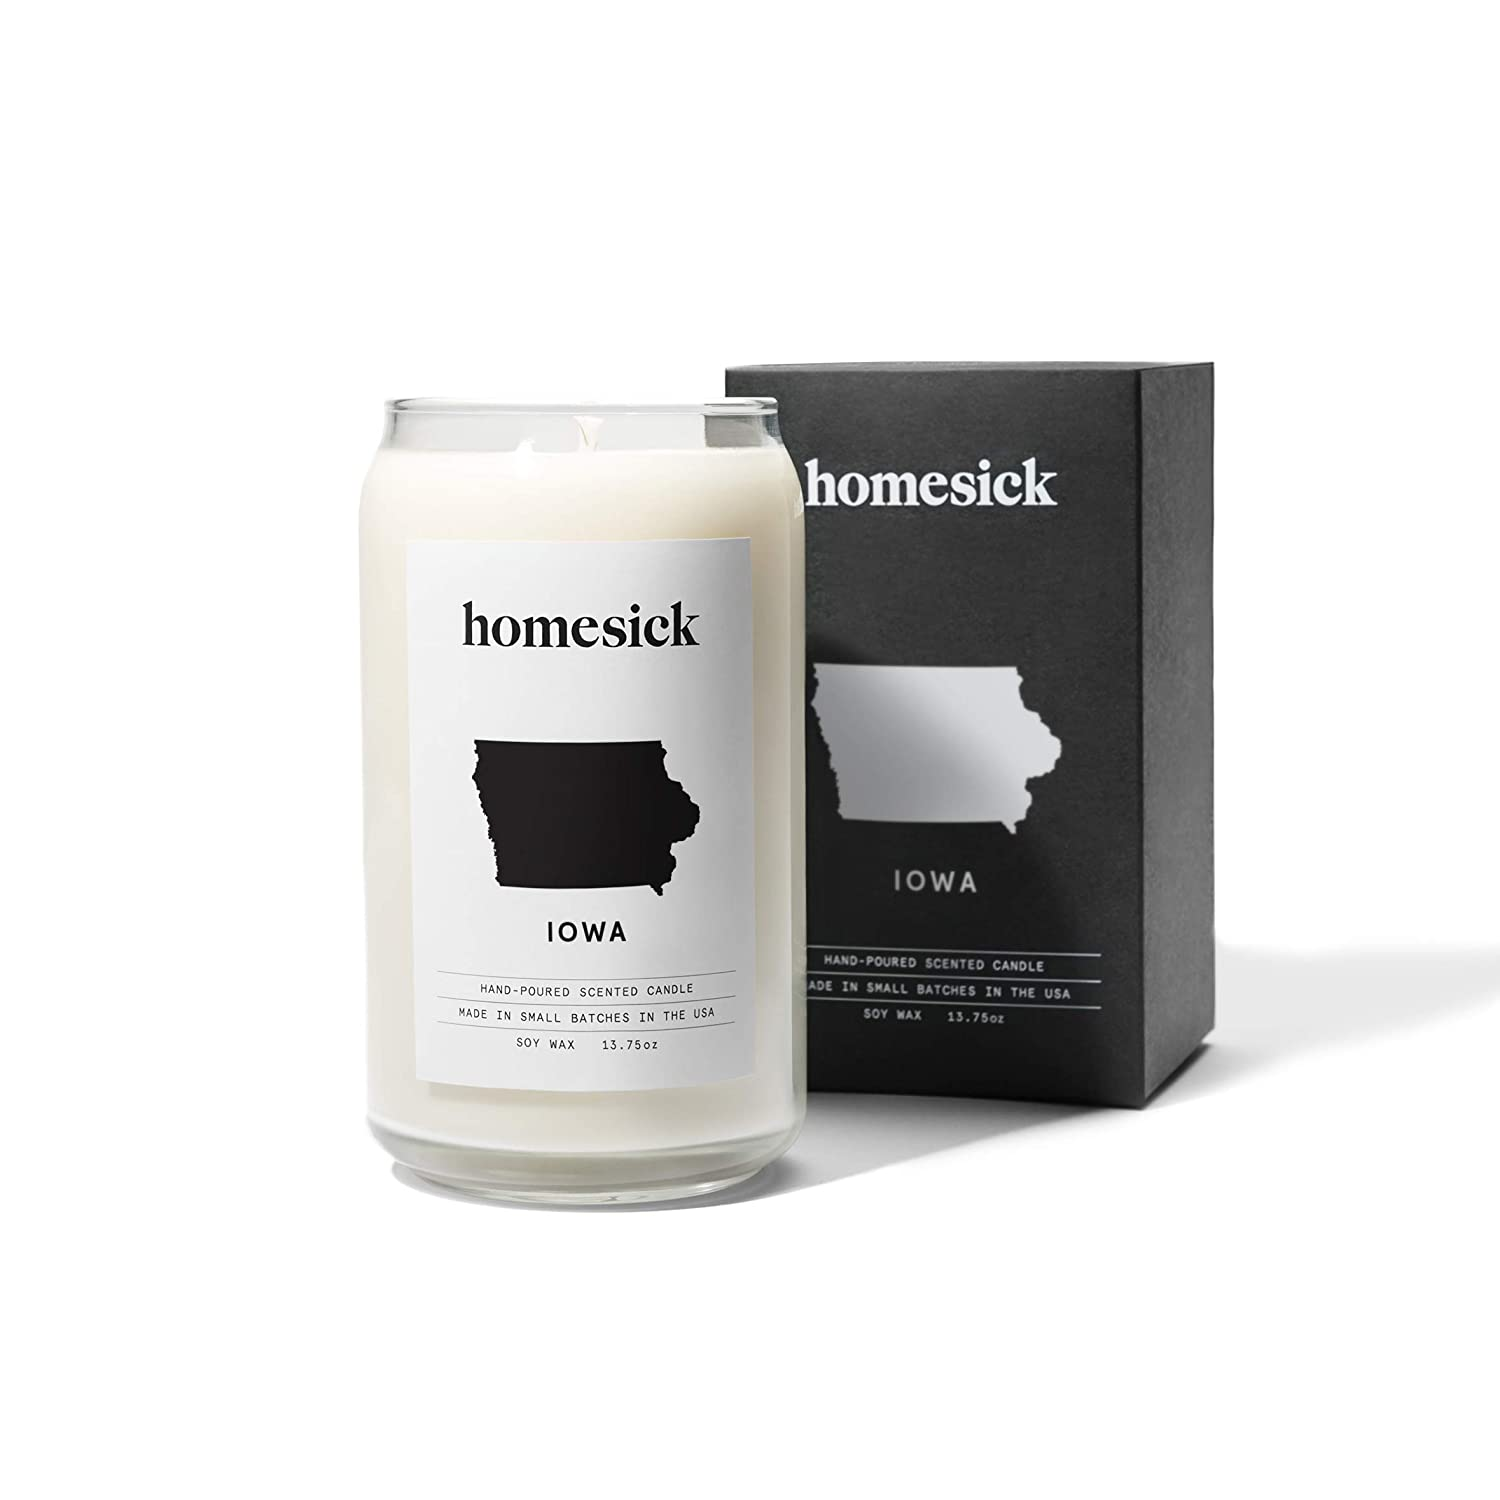 Homesick Scented Candle, Iowa